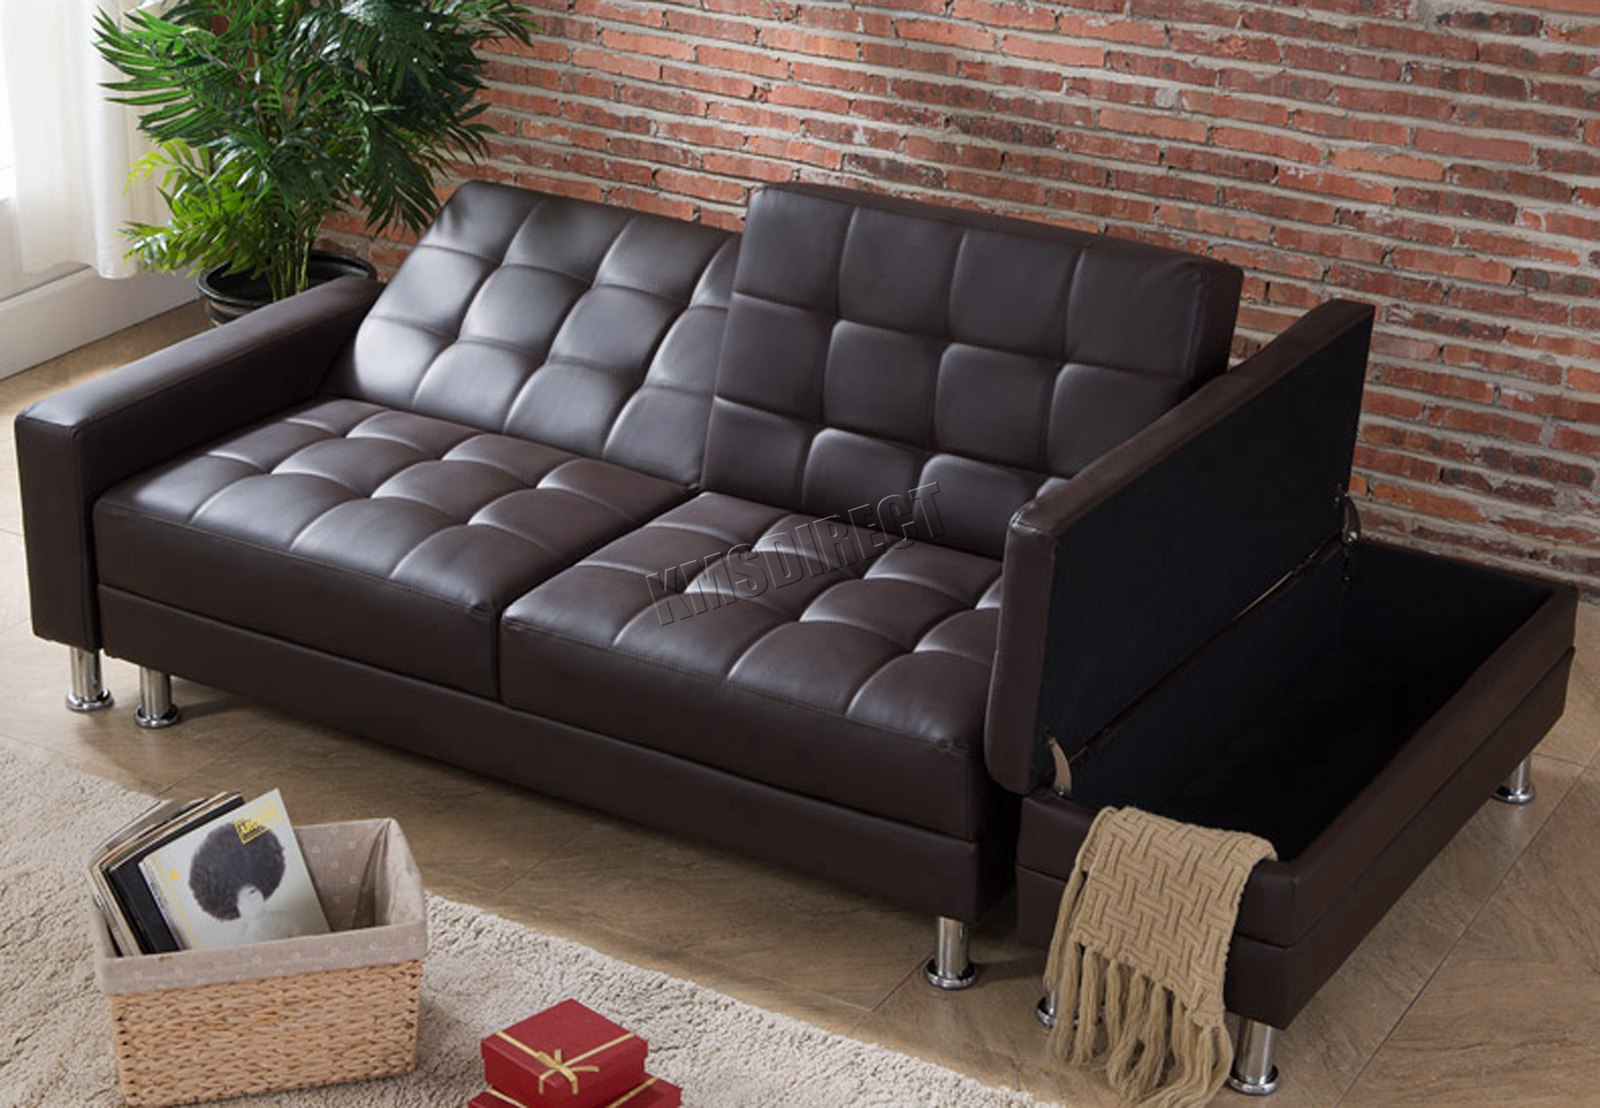 Westwood Pu Sofa Bed With Storage 3 Seater Guest Sleeper Throughout Hartford Storage Sectional Futon Sofas (View 12 of 15)